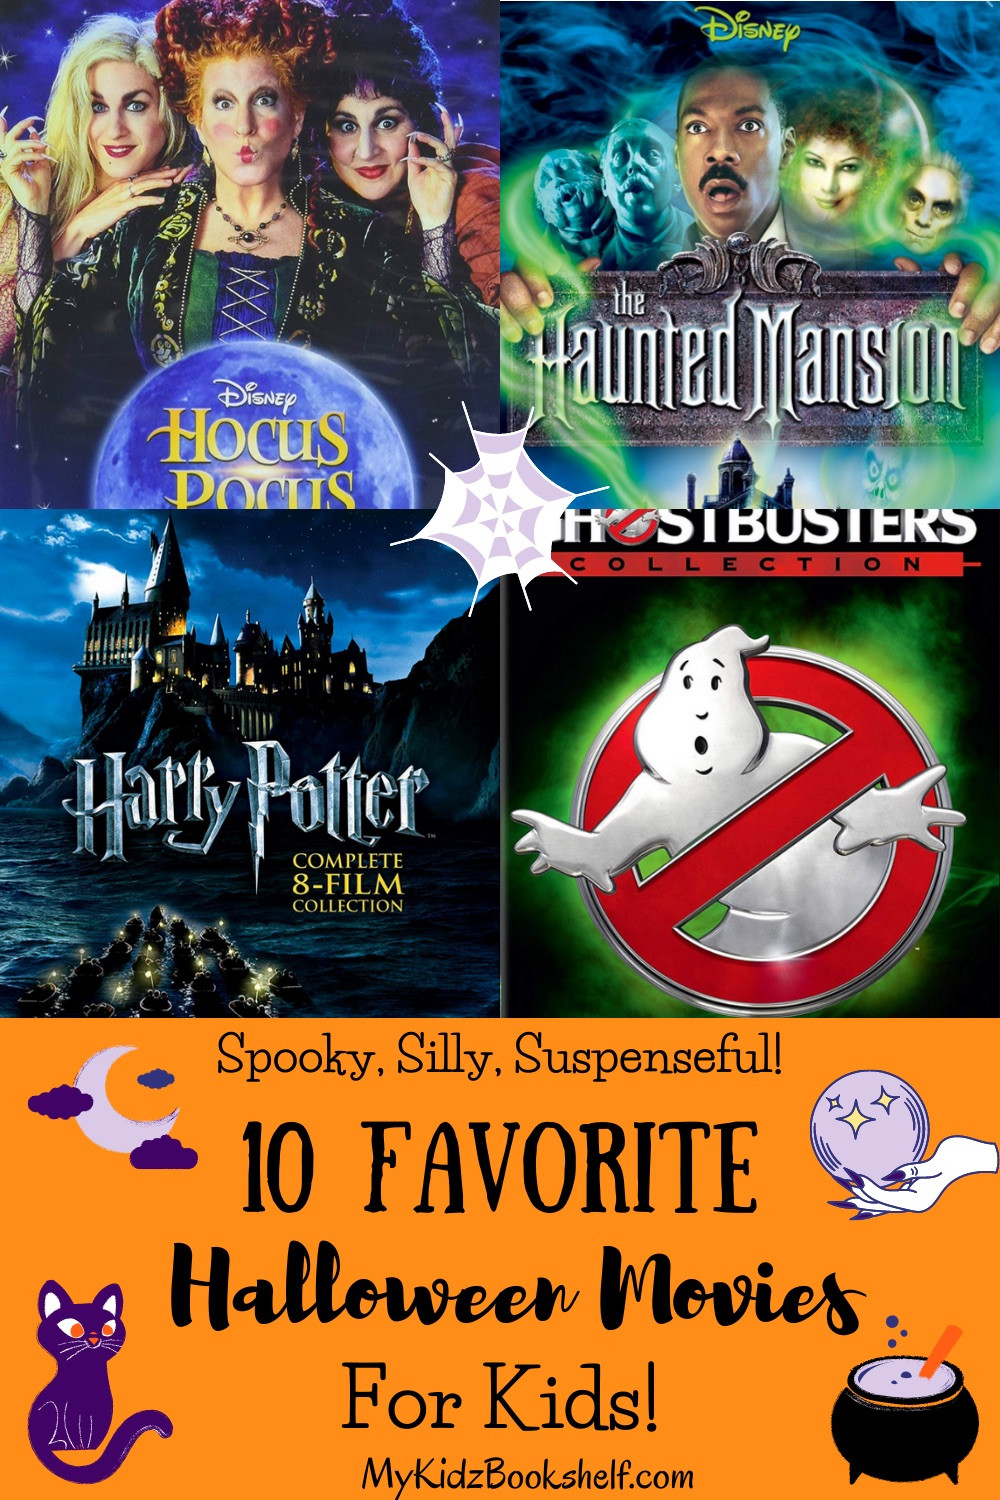 10 Favorite Halloween Movies for Kids with movie posters Hocus Pocus Ghostbusters, Harry Potter Disney